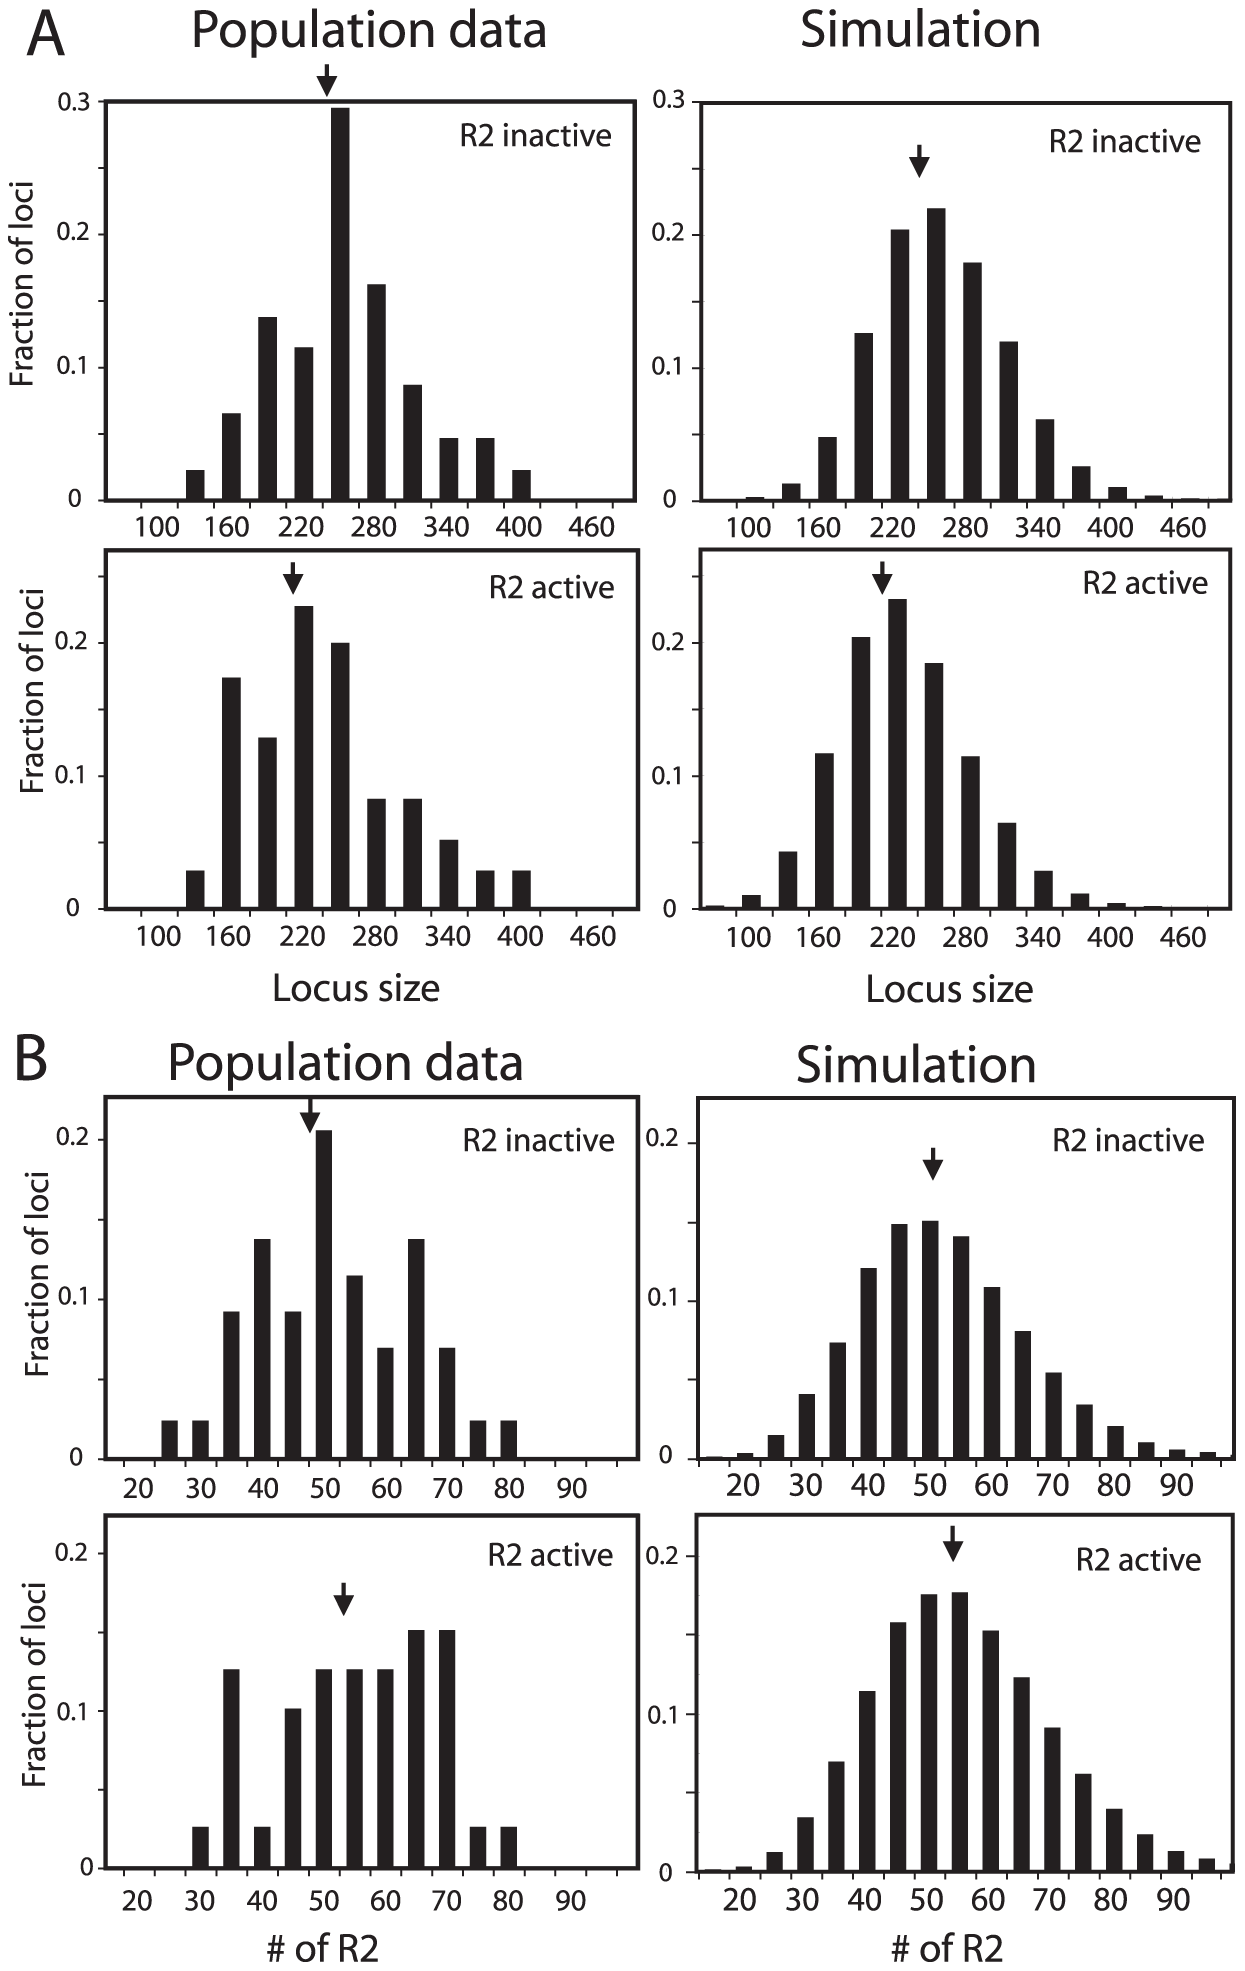 Comparison of the rDNA locus size and R2 number in R2-active and R2-inactive individuals.